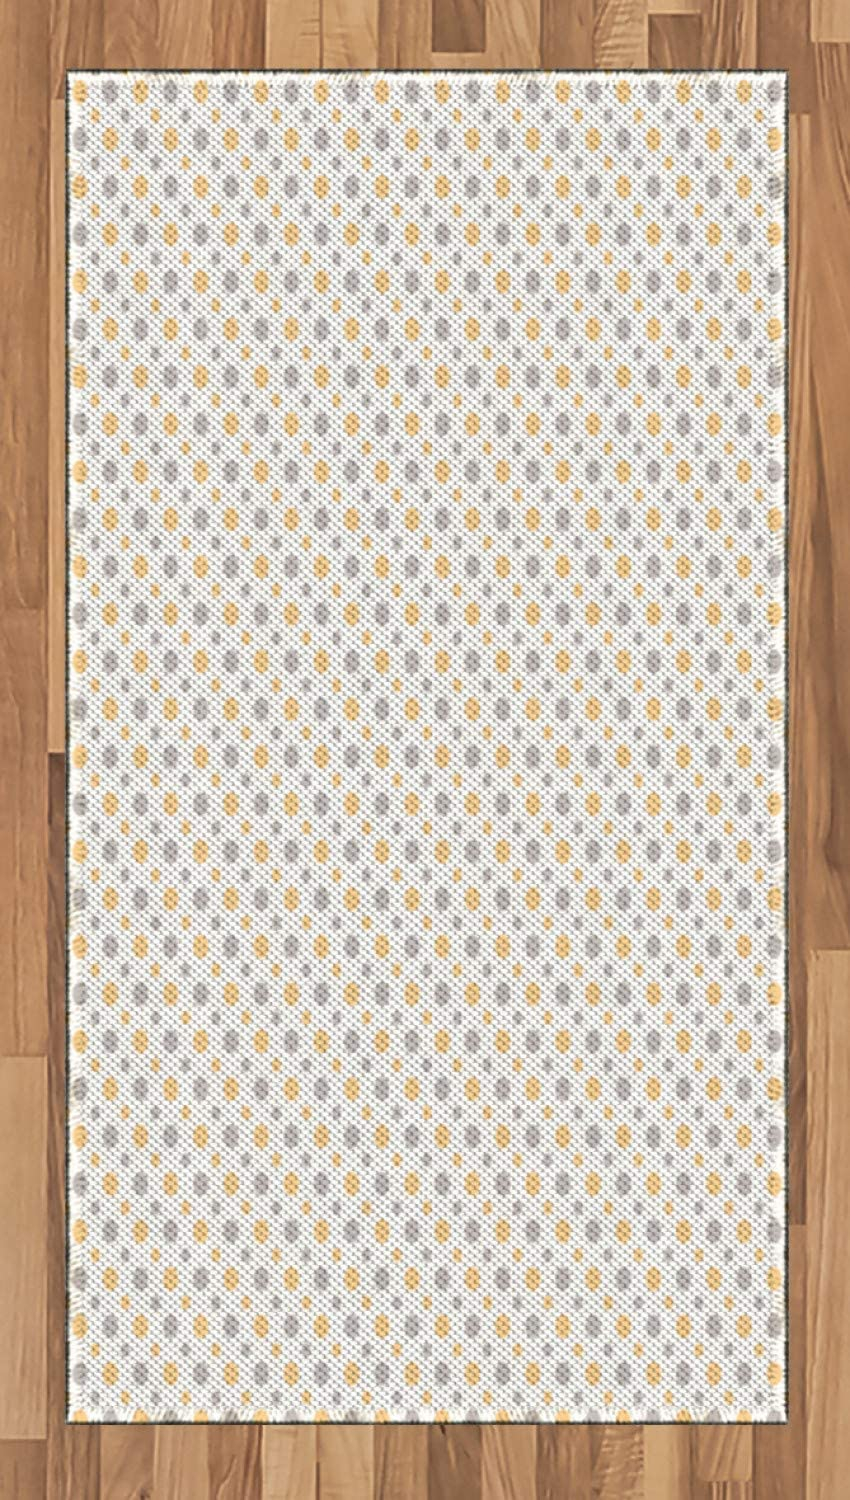 Ambesonne Vintage Area Rug, Big and Small Dots Shabby Colors Simple Retro Style Symmetric Pattern, Flat Woven Accent Rug for Living Room Bedroom Dining Room, 2.6 x 5 FT, Orange White Cadet Blue